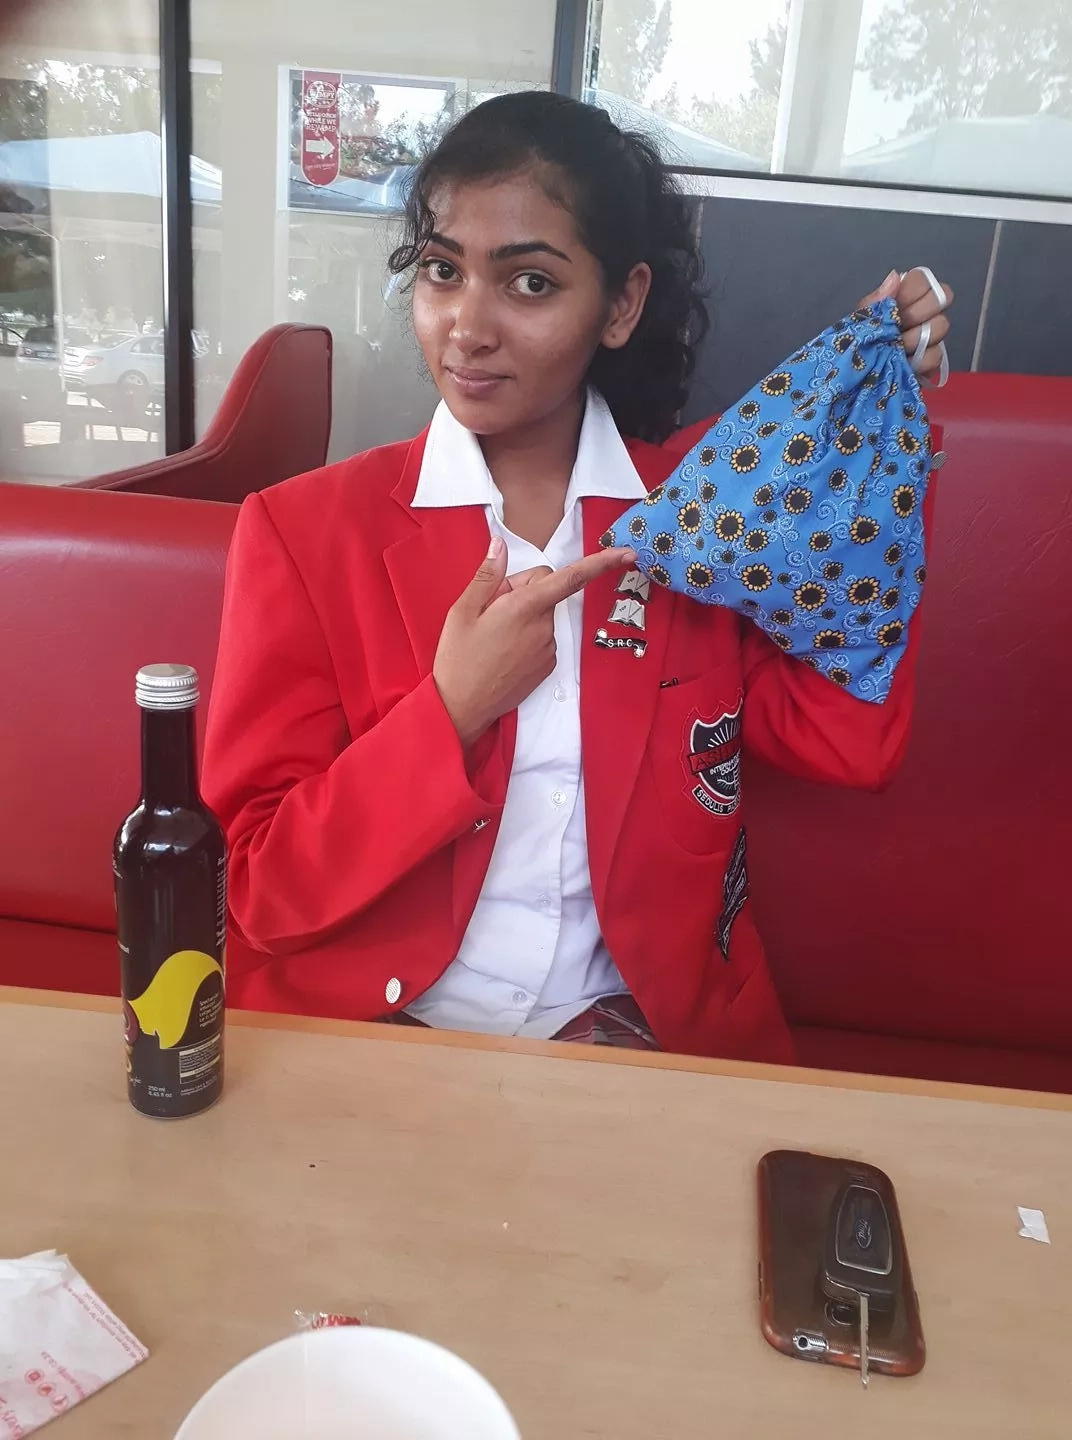 Sehera Bisnath is determined to help underprivileged girls get access to sanitary towels. Photo: LeadSA